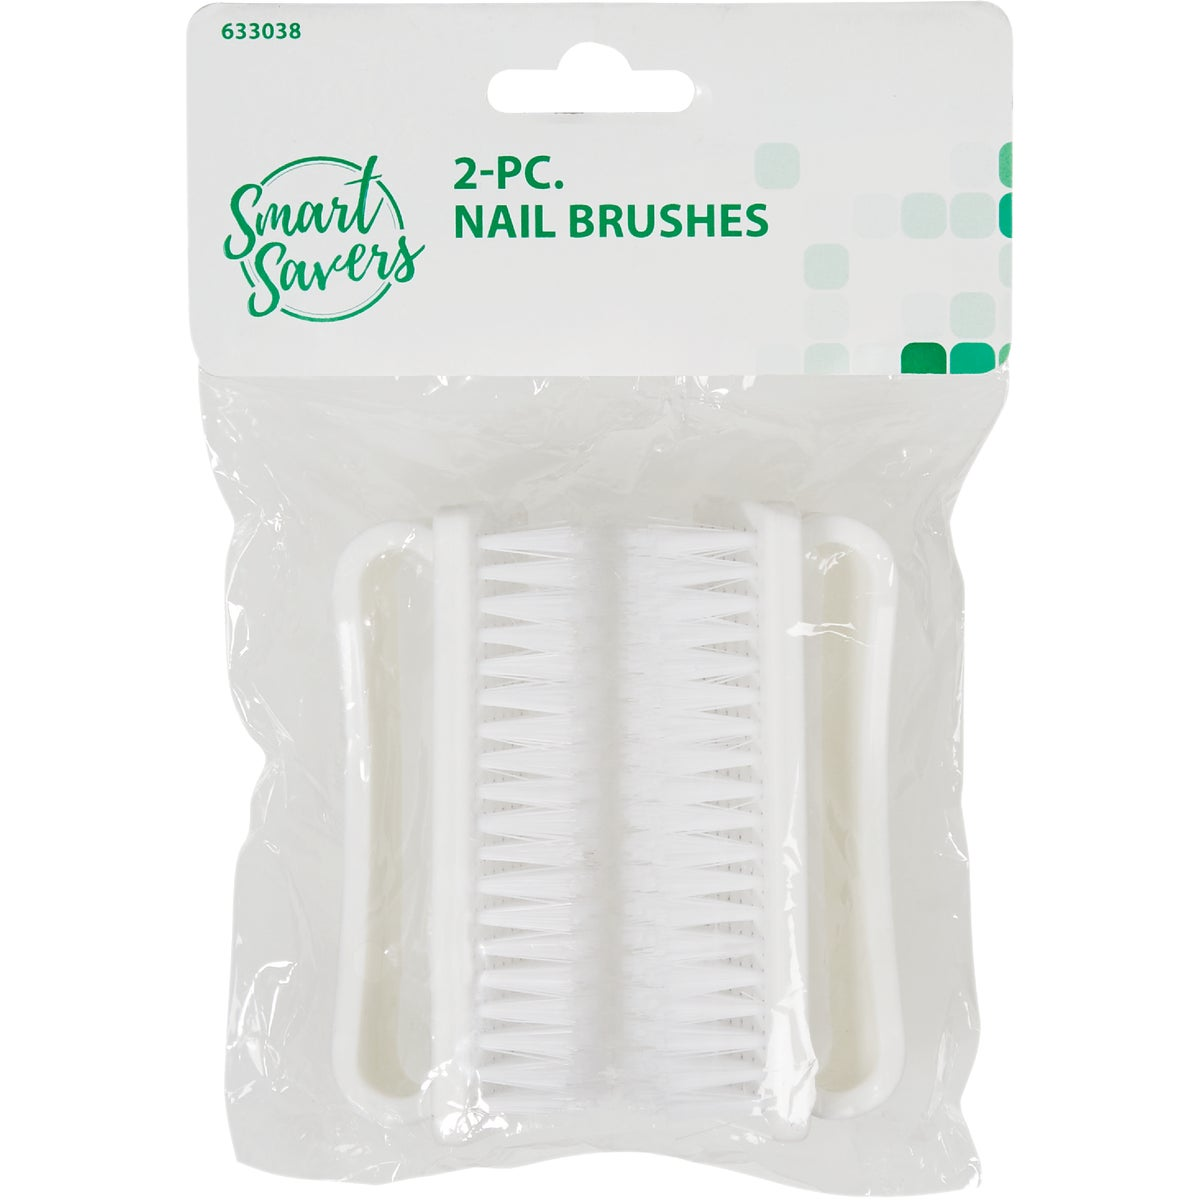 2PC NAIL BRUSH